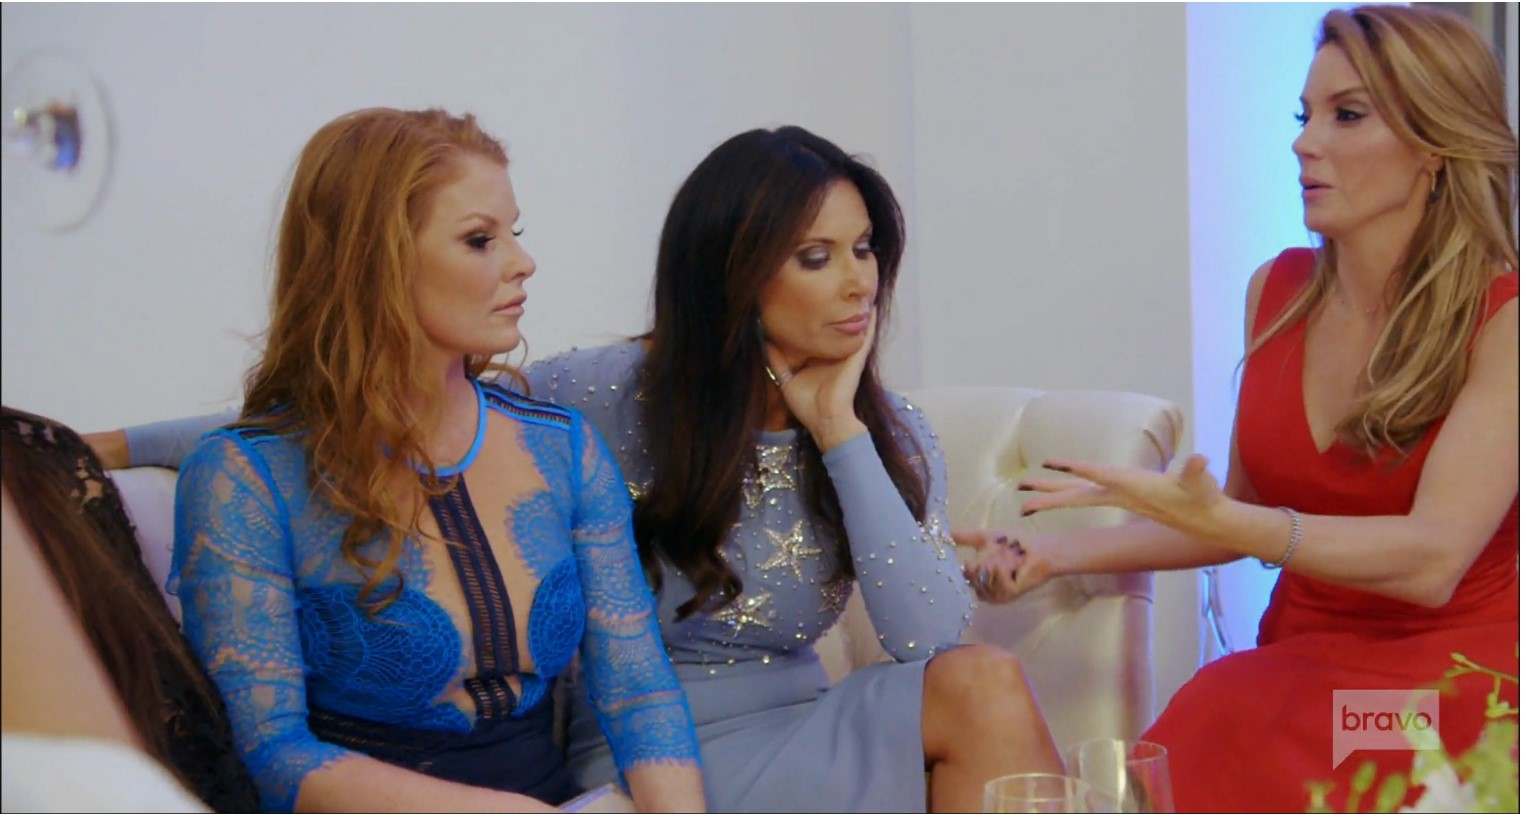 6b9d338afc5 We return to The Real Housewives of Dallas for what is rumored to be an  amazing season. Unlike last, this is the first season fully intended to be  part of ...